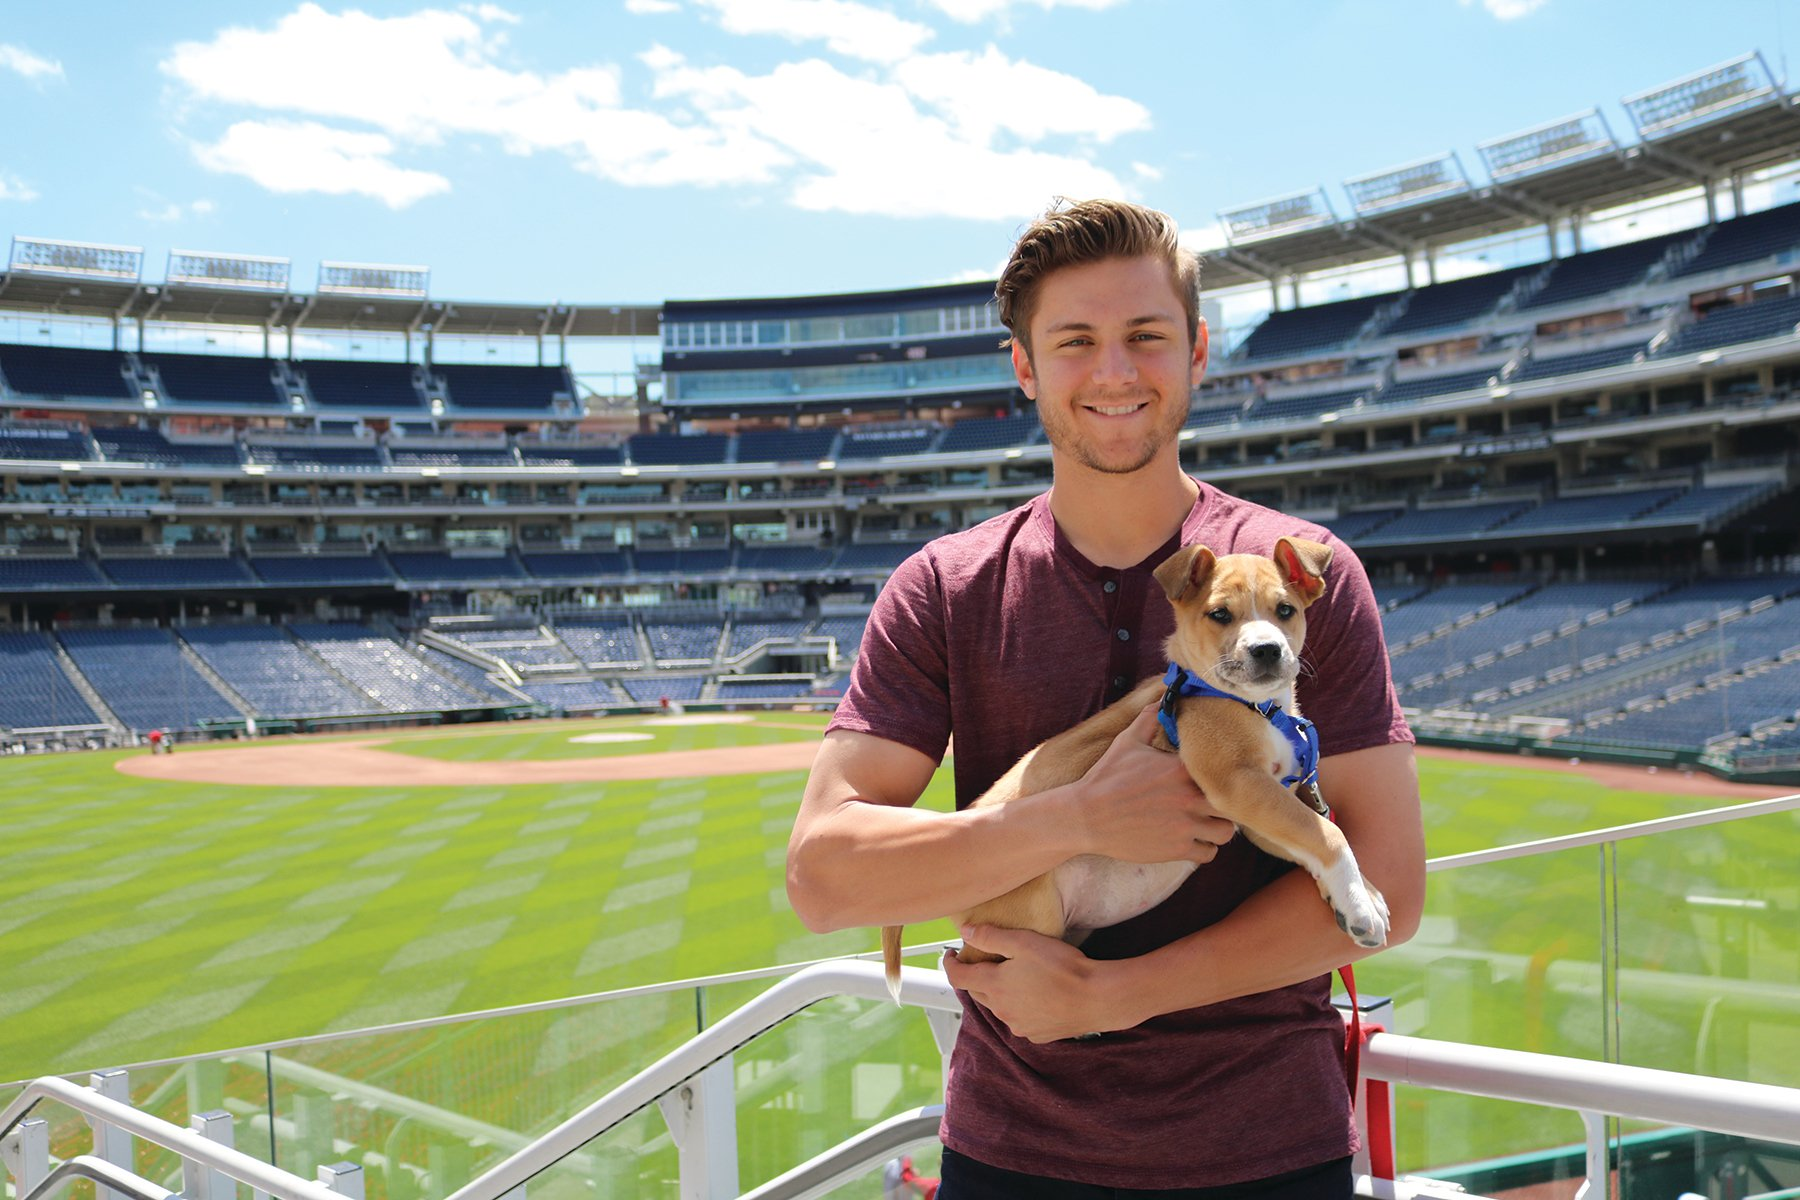 @UMBCAthletics @Cardinals @MattCarp13 Trea Turner loves doggos AND leads all NL shortstops in fWAR. https://t.co/uzQPZB5pTh